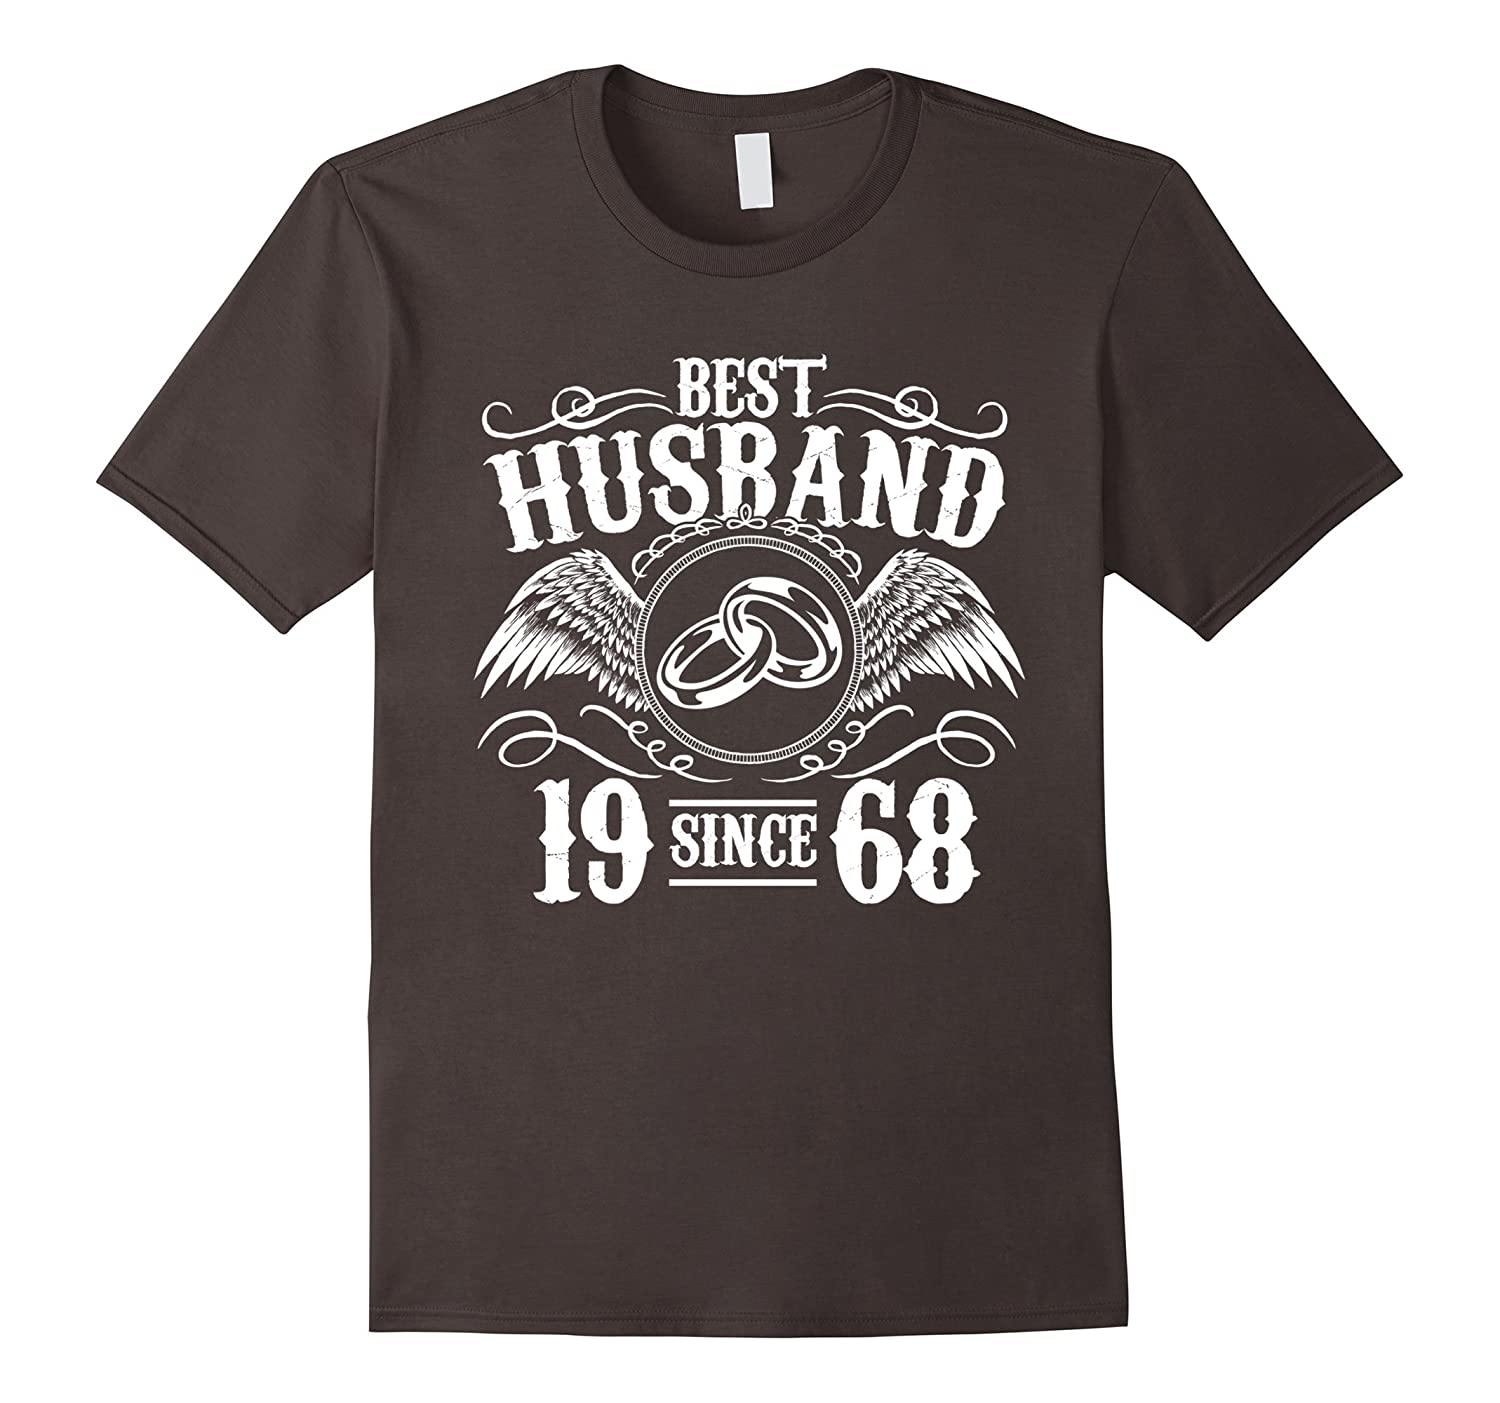 Great Wedding Gift For Husband: Great T-Shirt For Husband. 49th Wedding Anniversary Gift